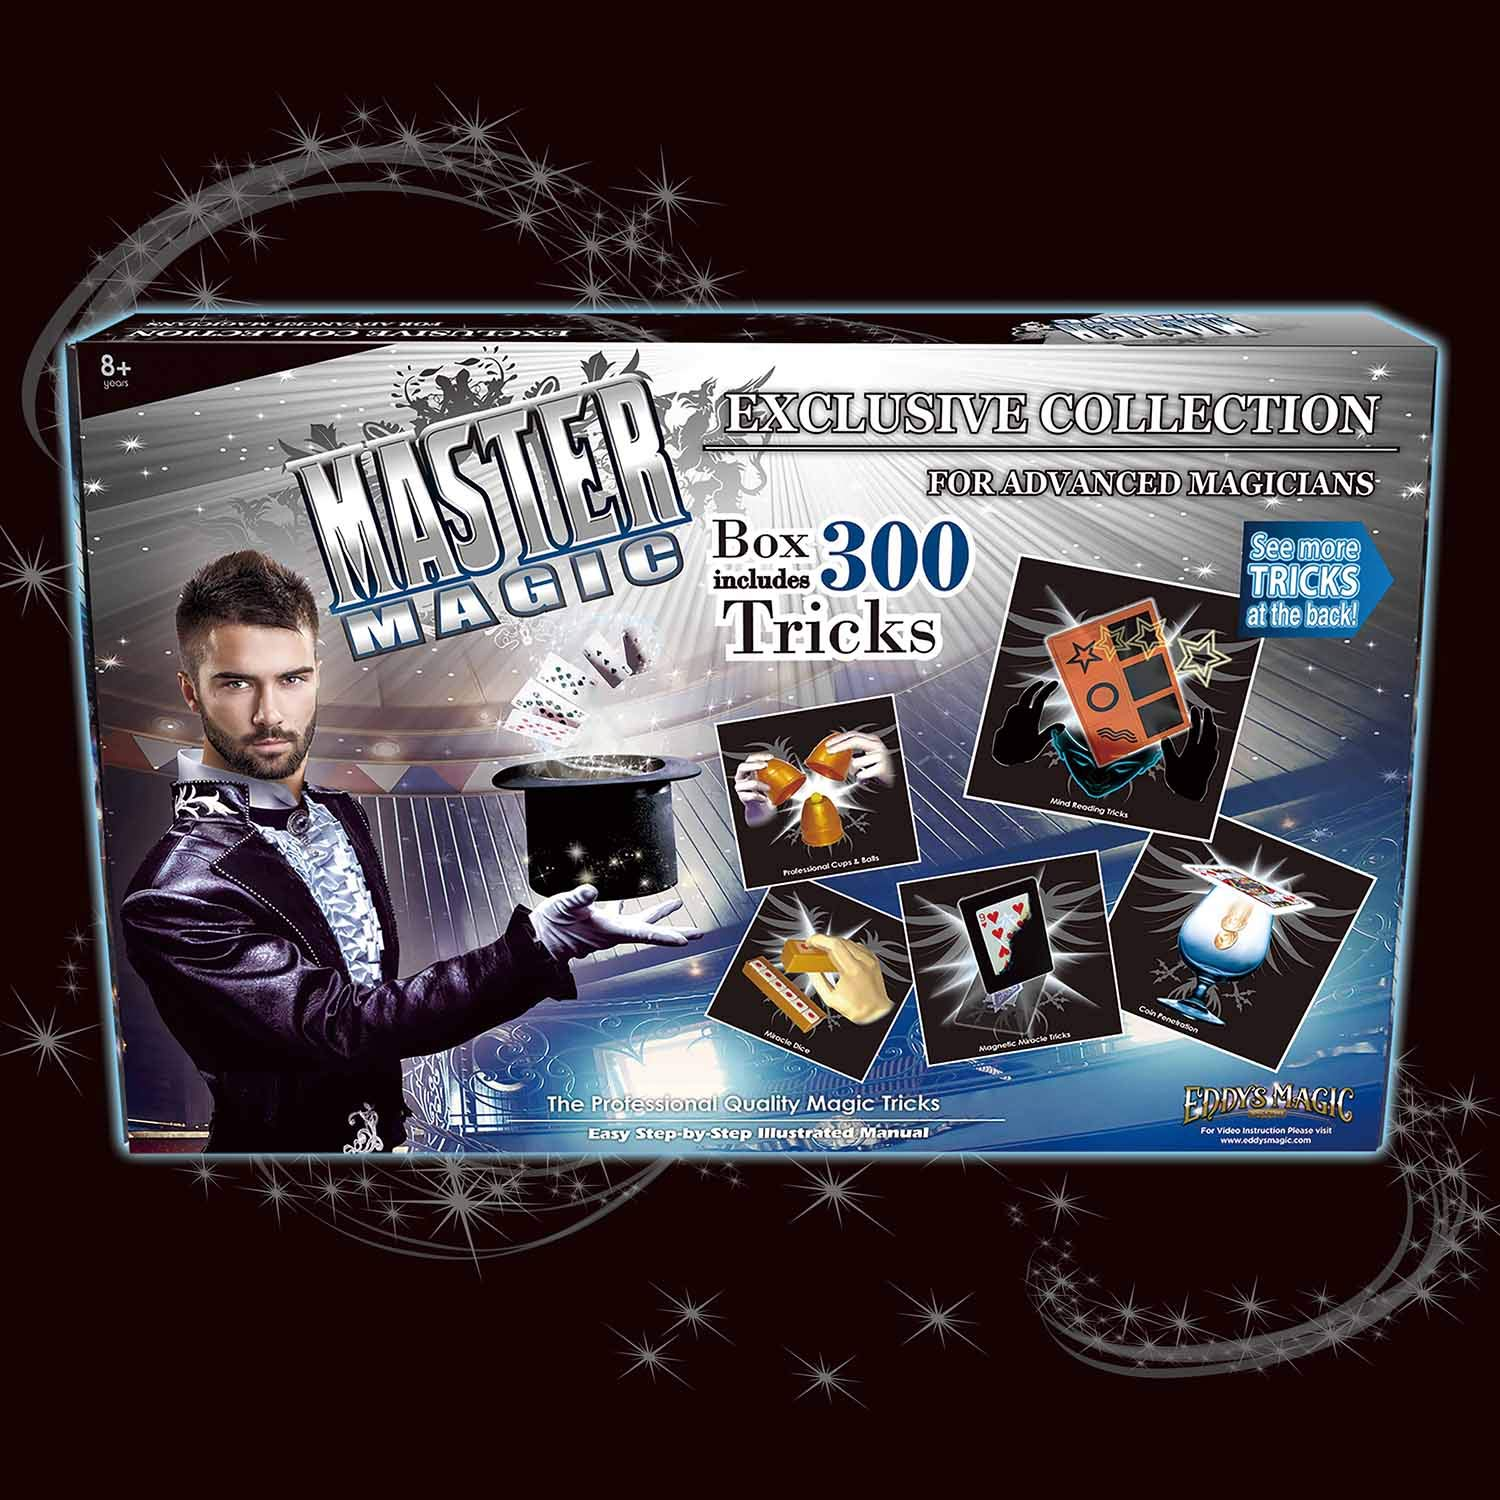 Edddy's Magic Master Magic Exclusive Collection with 300 Tricks by Eddy's Magic